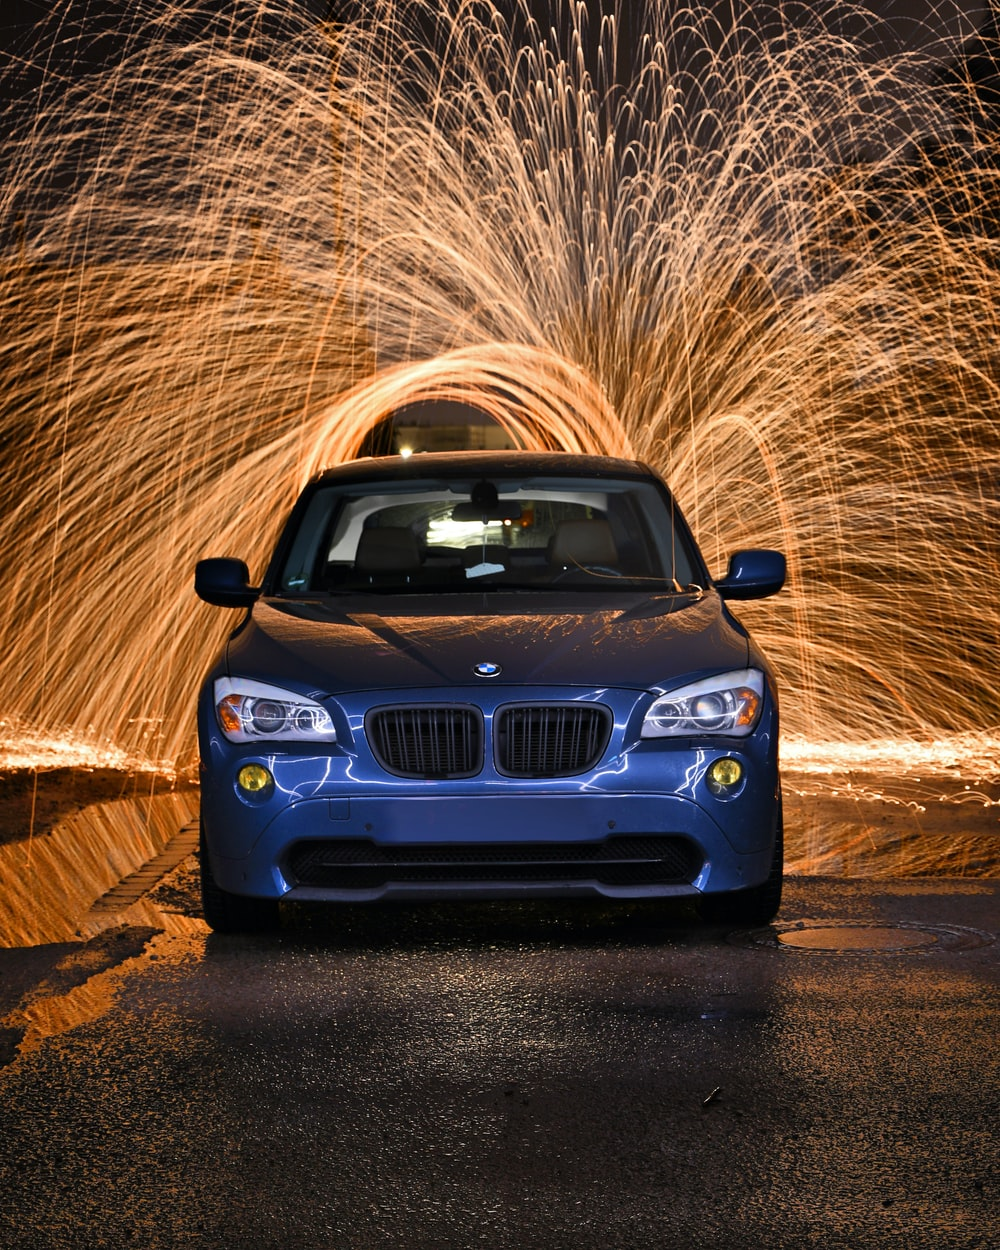 blue bmw car on brown dirt road during daytime